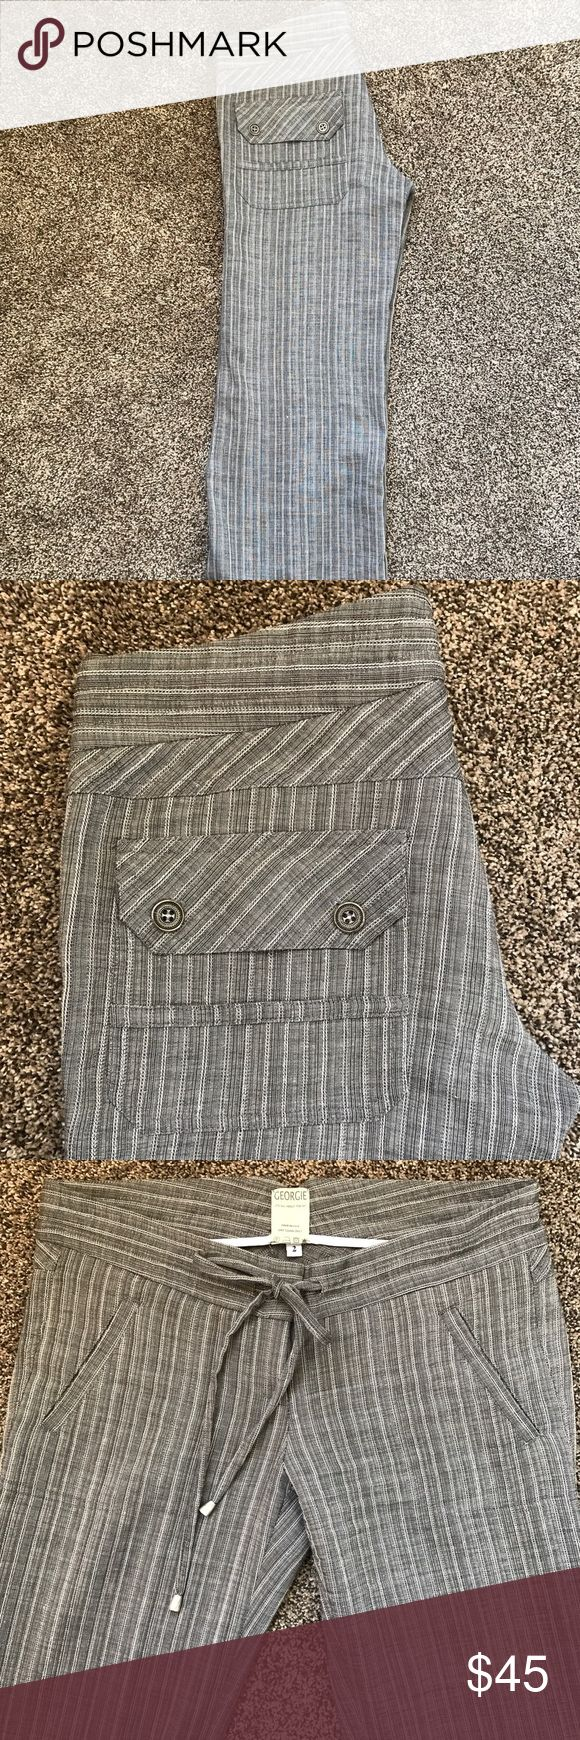 """Georgie Anthropology linen pin- striped pant SO comfy & cute. I'm 5'10 and typically need """"tall"""" pants, but these were plenty long enough! Worn once, excellent condition. Anthropologie Pants Wide Leg"""